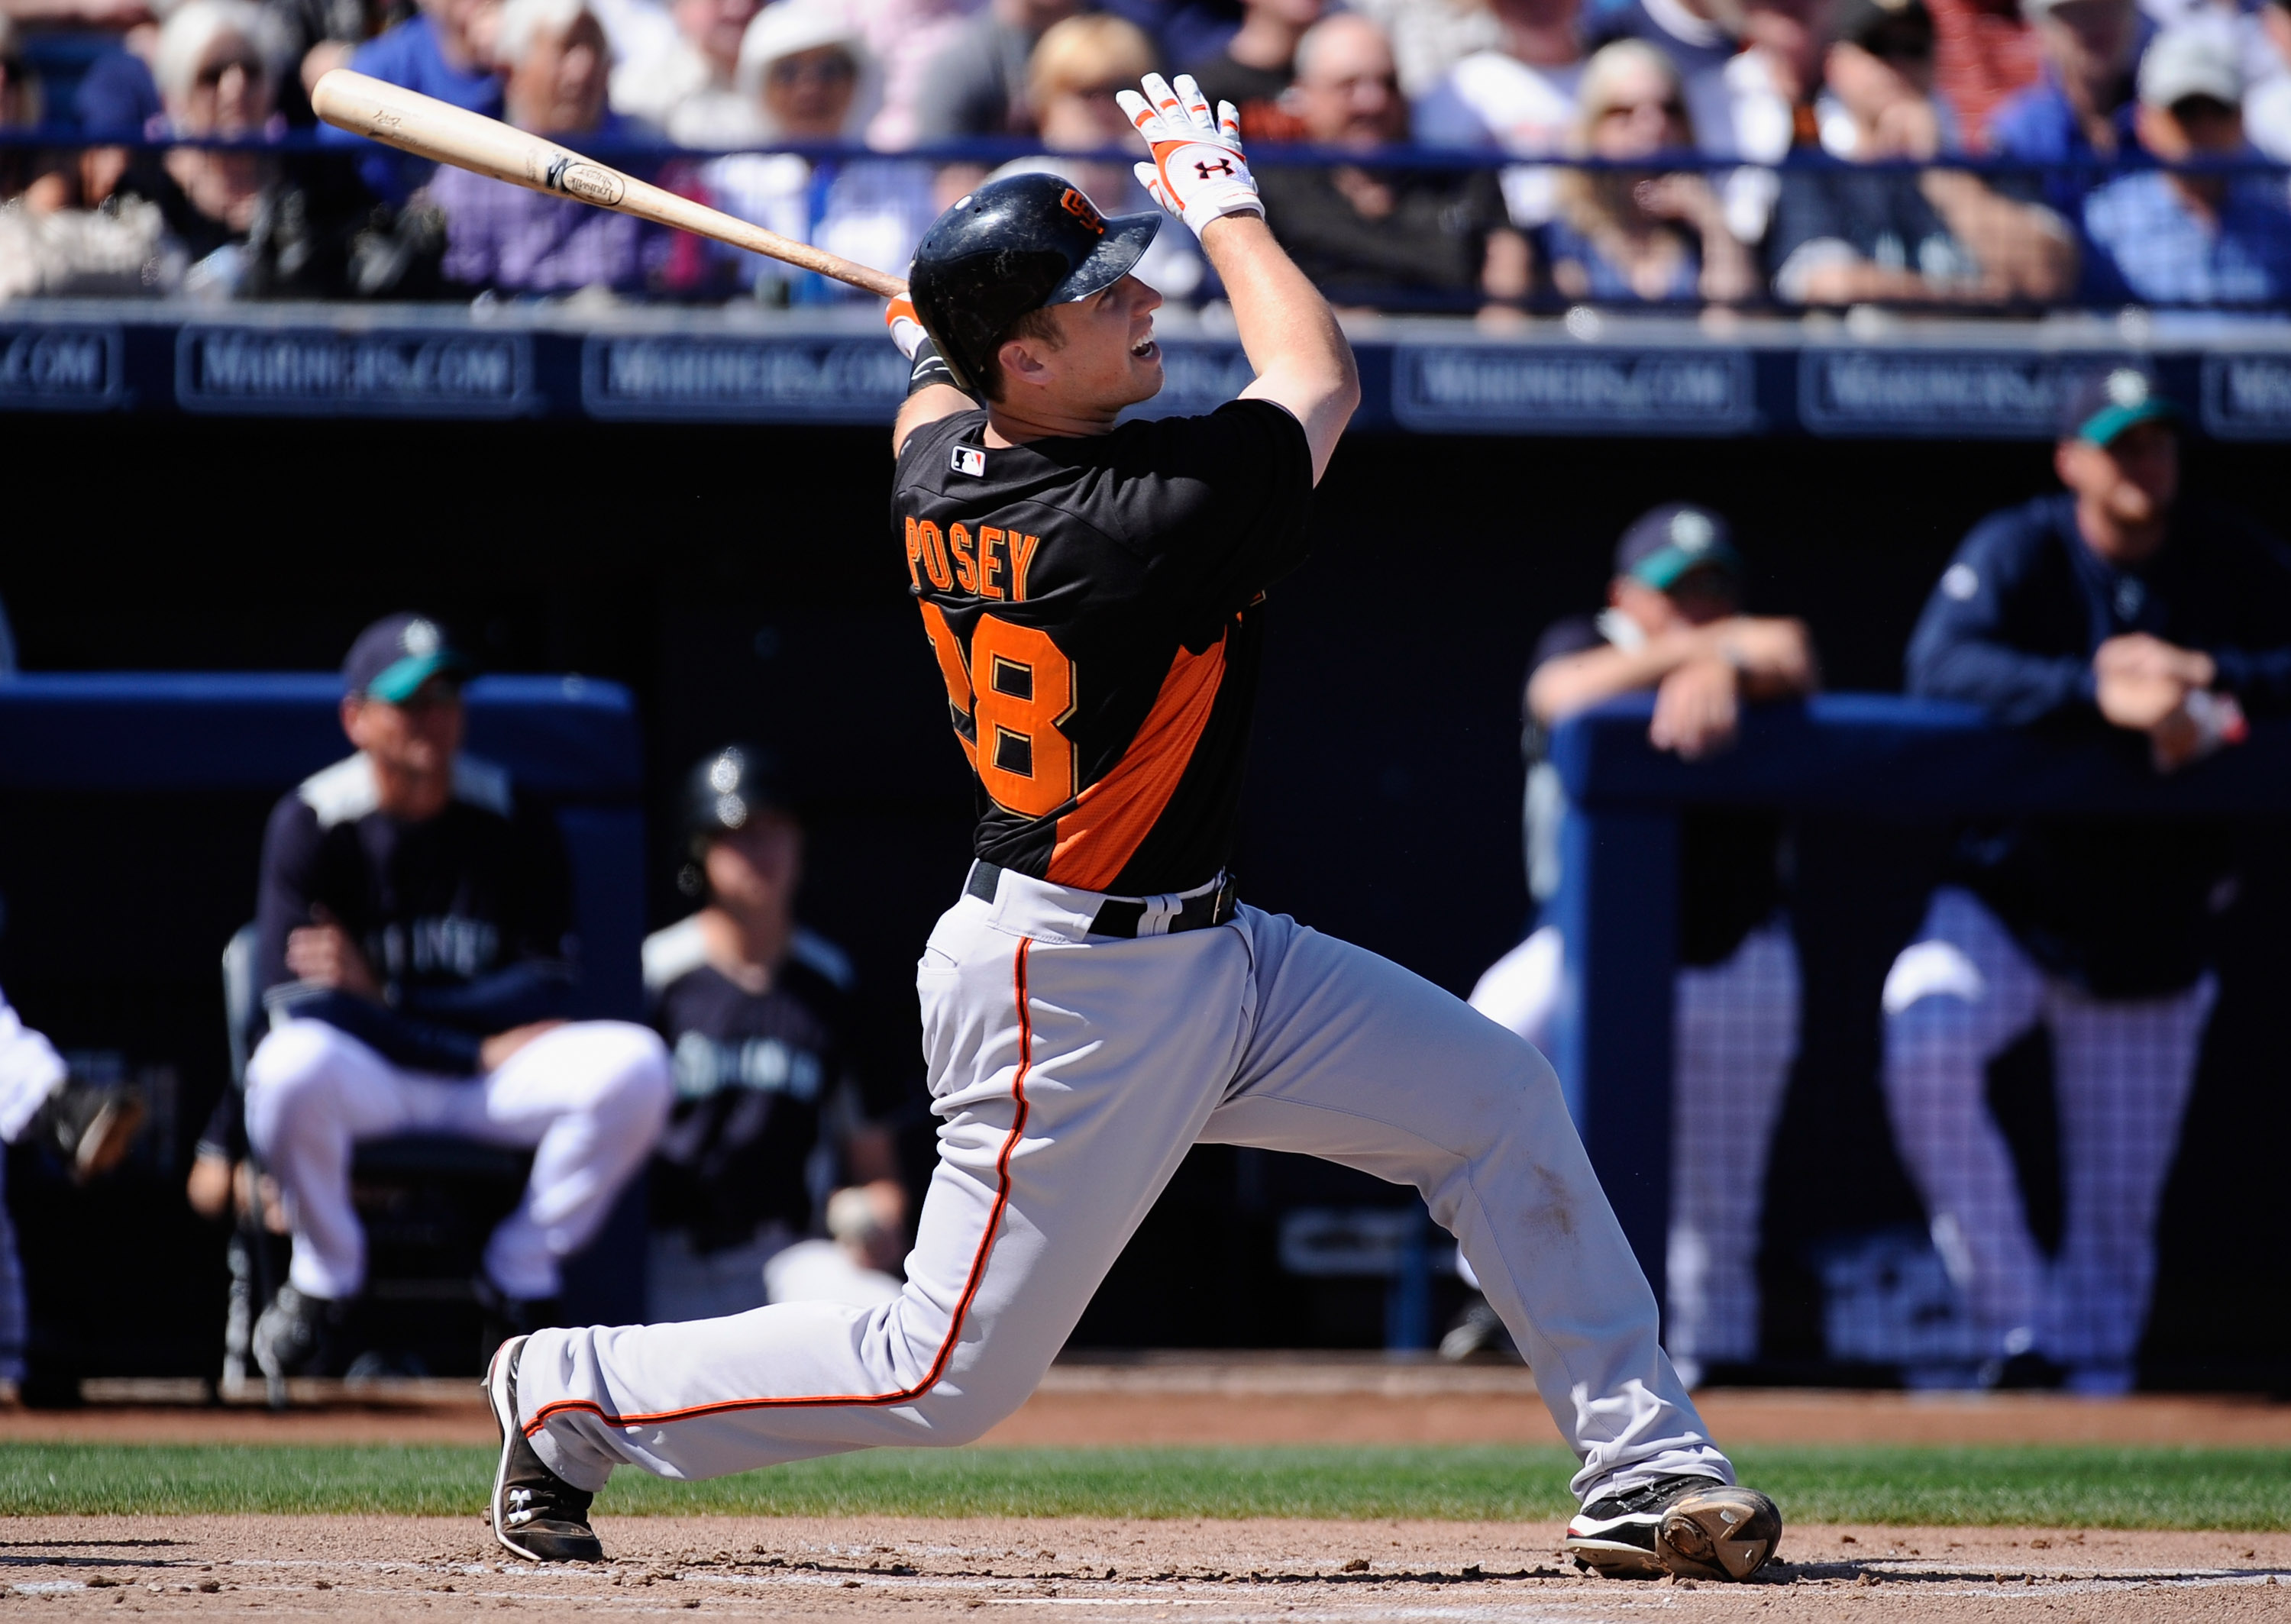 PEORIA, AZ - MARCH 08:  Buster Posey #28 San Francisco Giants swings at a pitch against the Seattle Mariners during the spring training baseball game against at Peoria Stadium on March 8, 2011 in Peoria, Arizona.  (Photo by Kevork Djansezian/Getty Images)